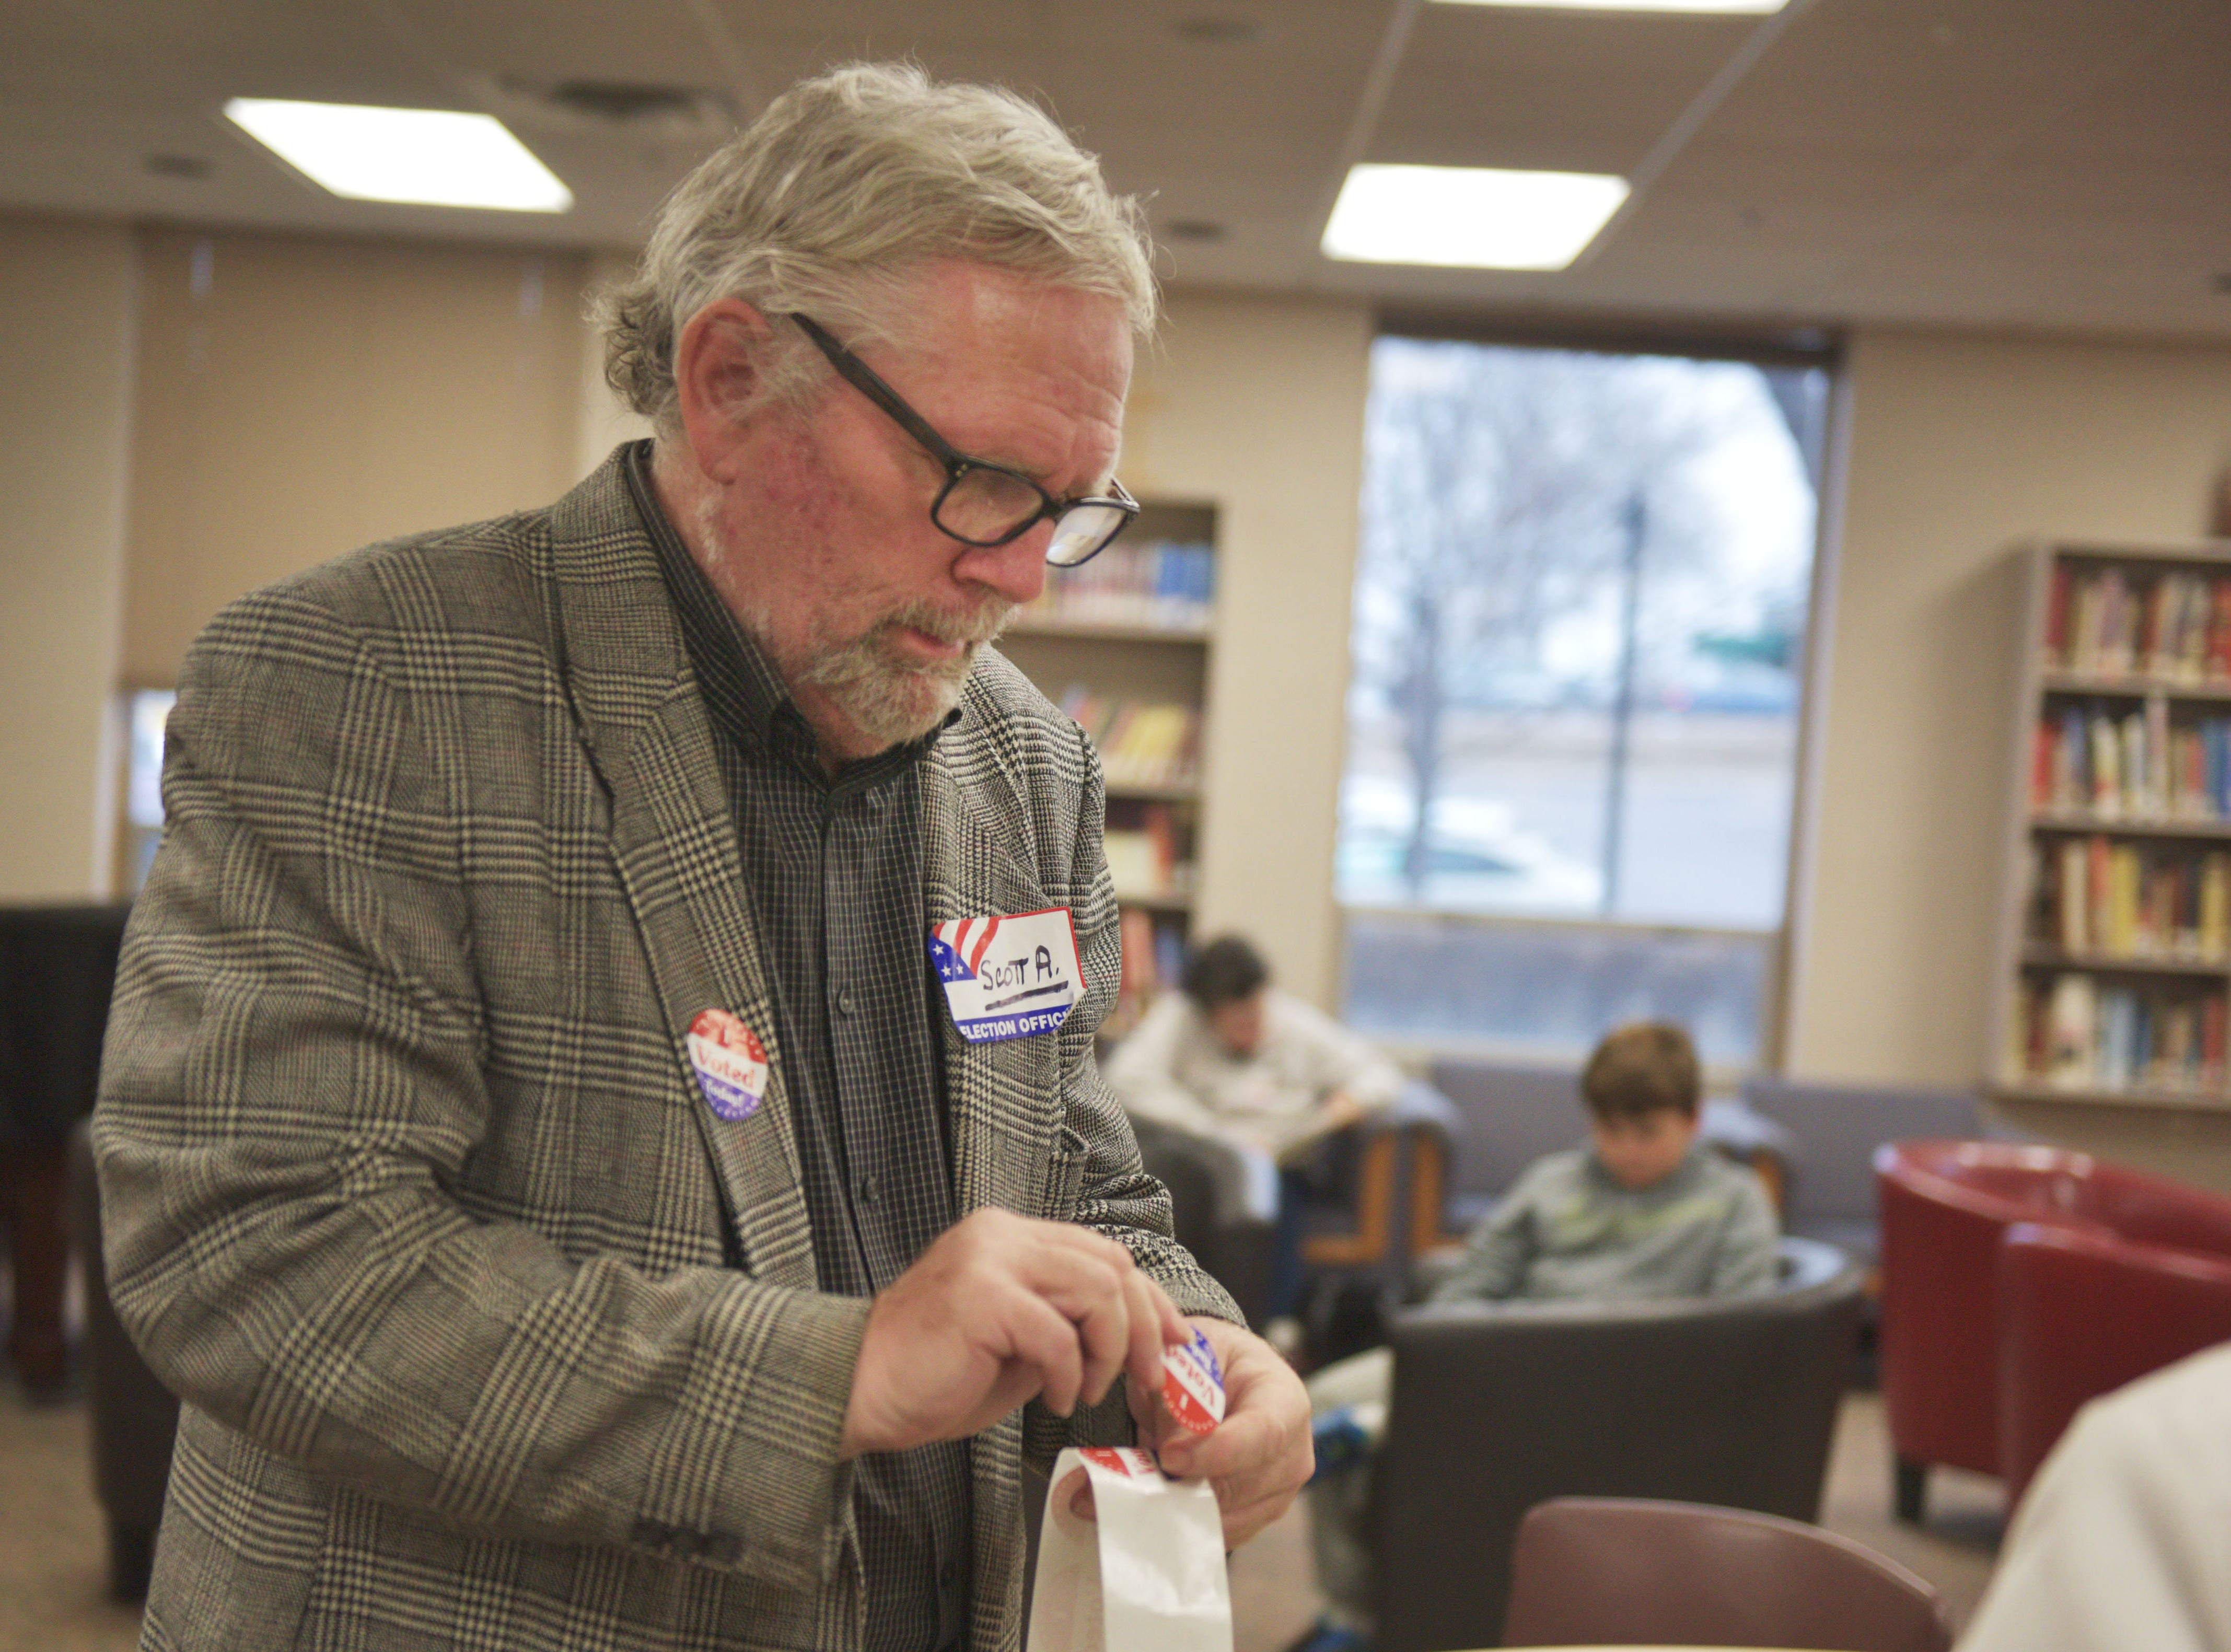 """Scott Allan hands out """"I voted today!"""" stickers in the 2018 midterm elections Tuesday, Nov. 6, at First Lutheran Church in Sioux Falls."""